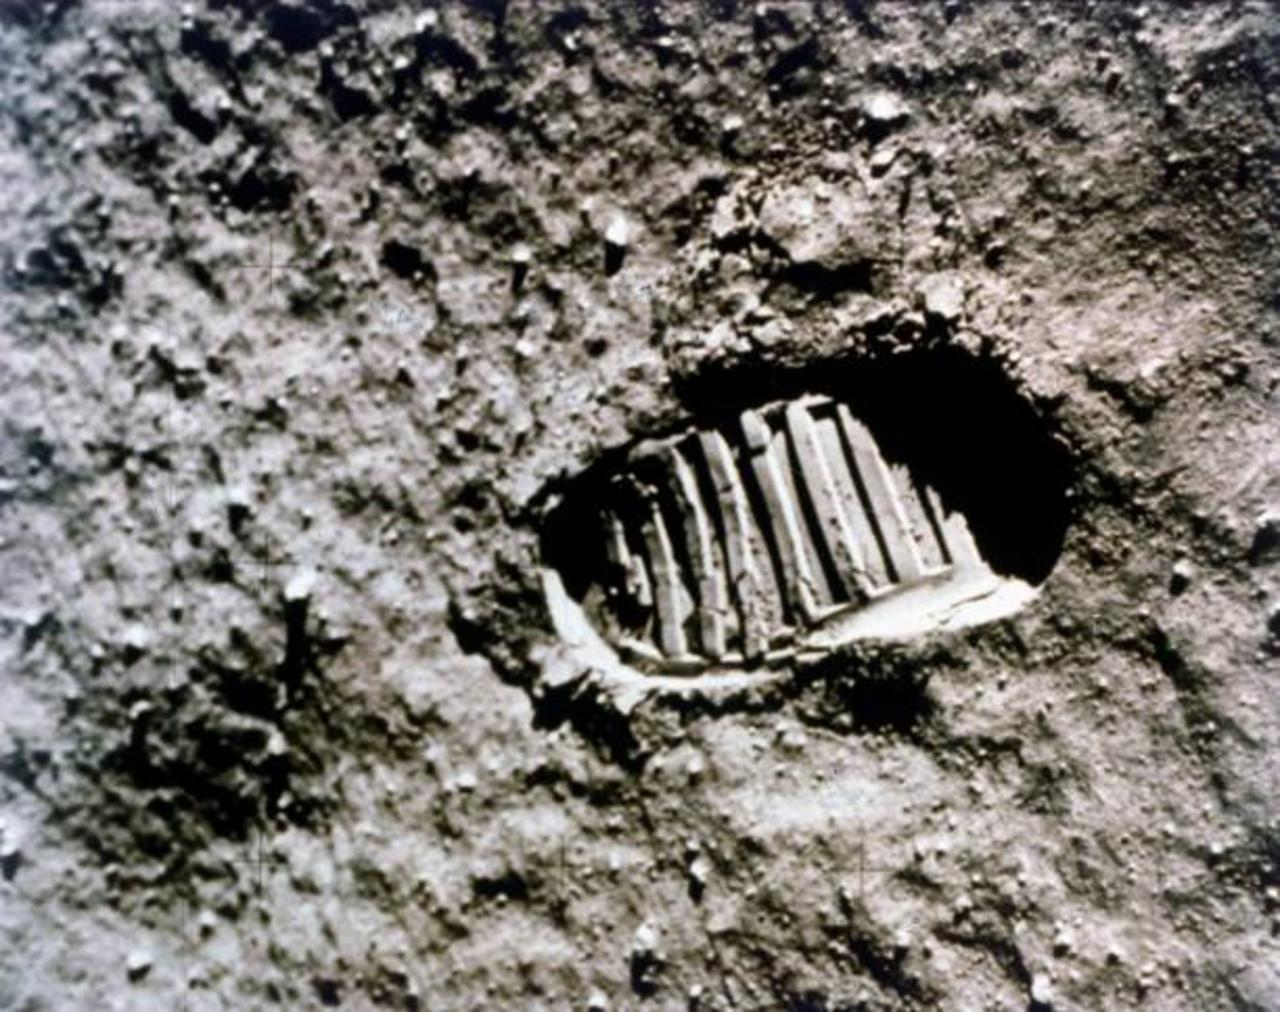 This Day in History: Armstrong Walks on Moon